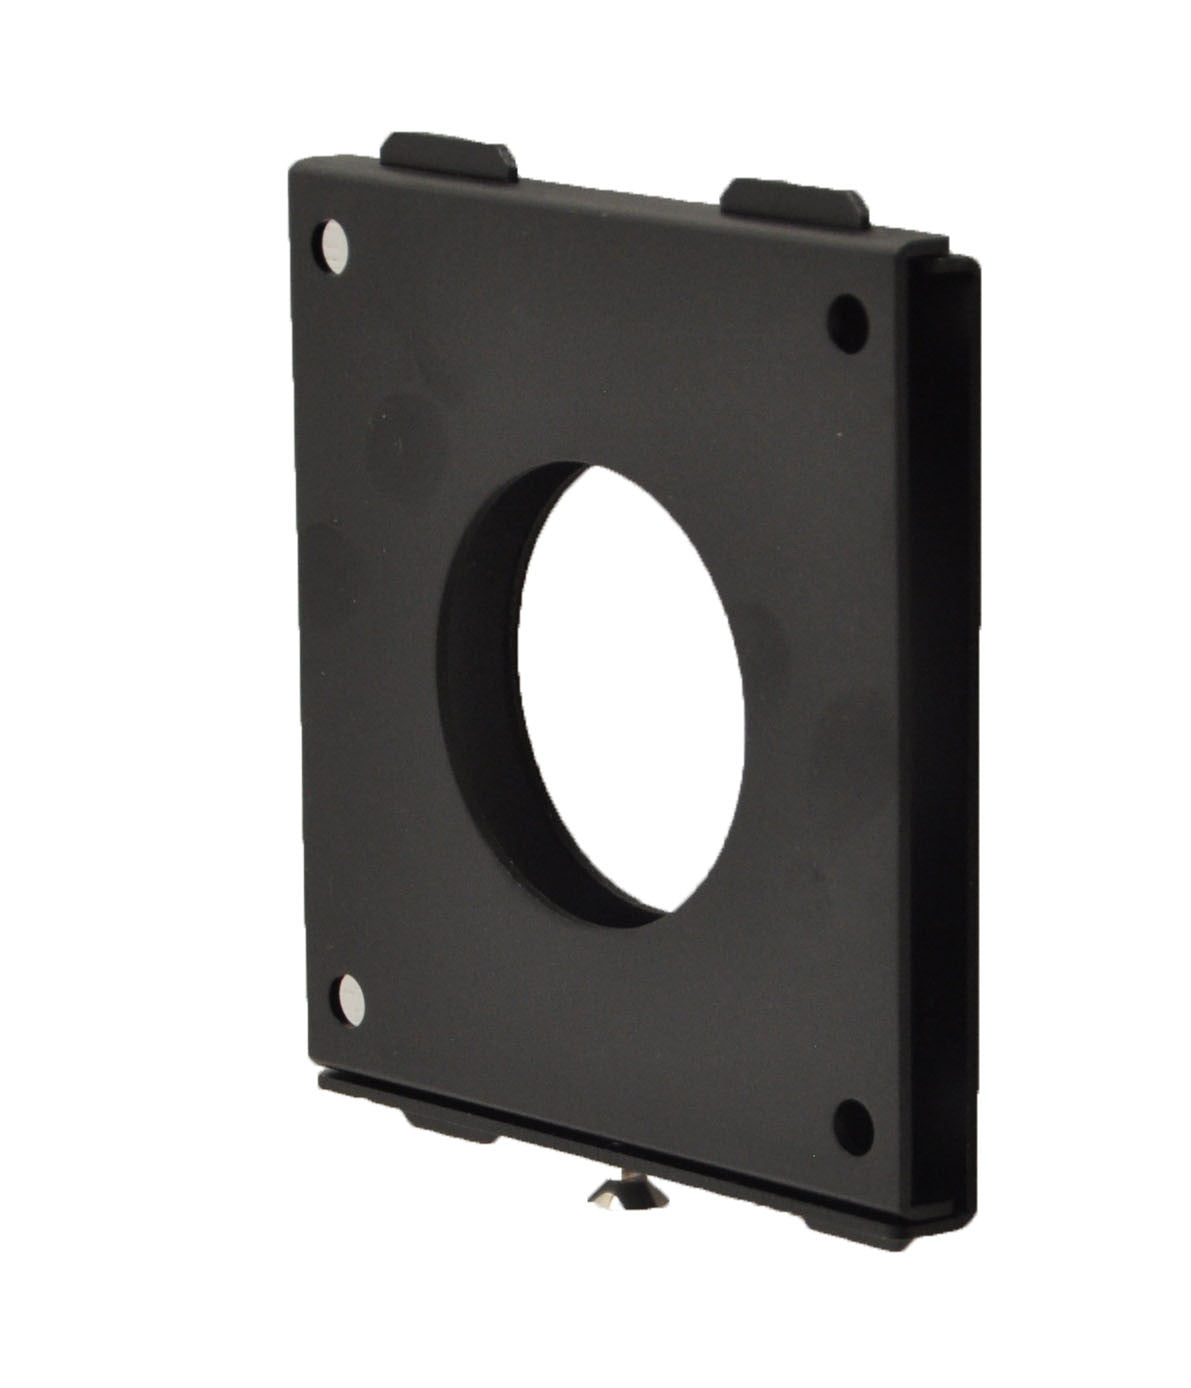 Anti-Theft Low Profile mini VESA 75mm Wall Mount Kit for LCD/LED TVs, Displays, Tablets